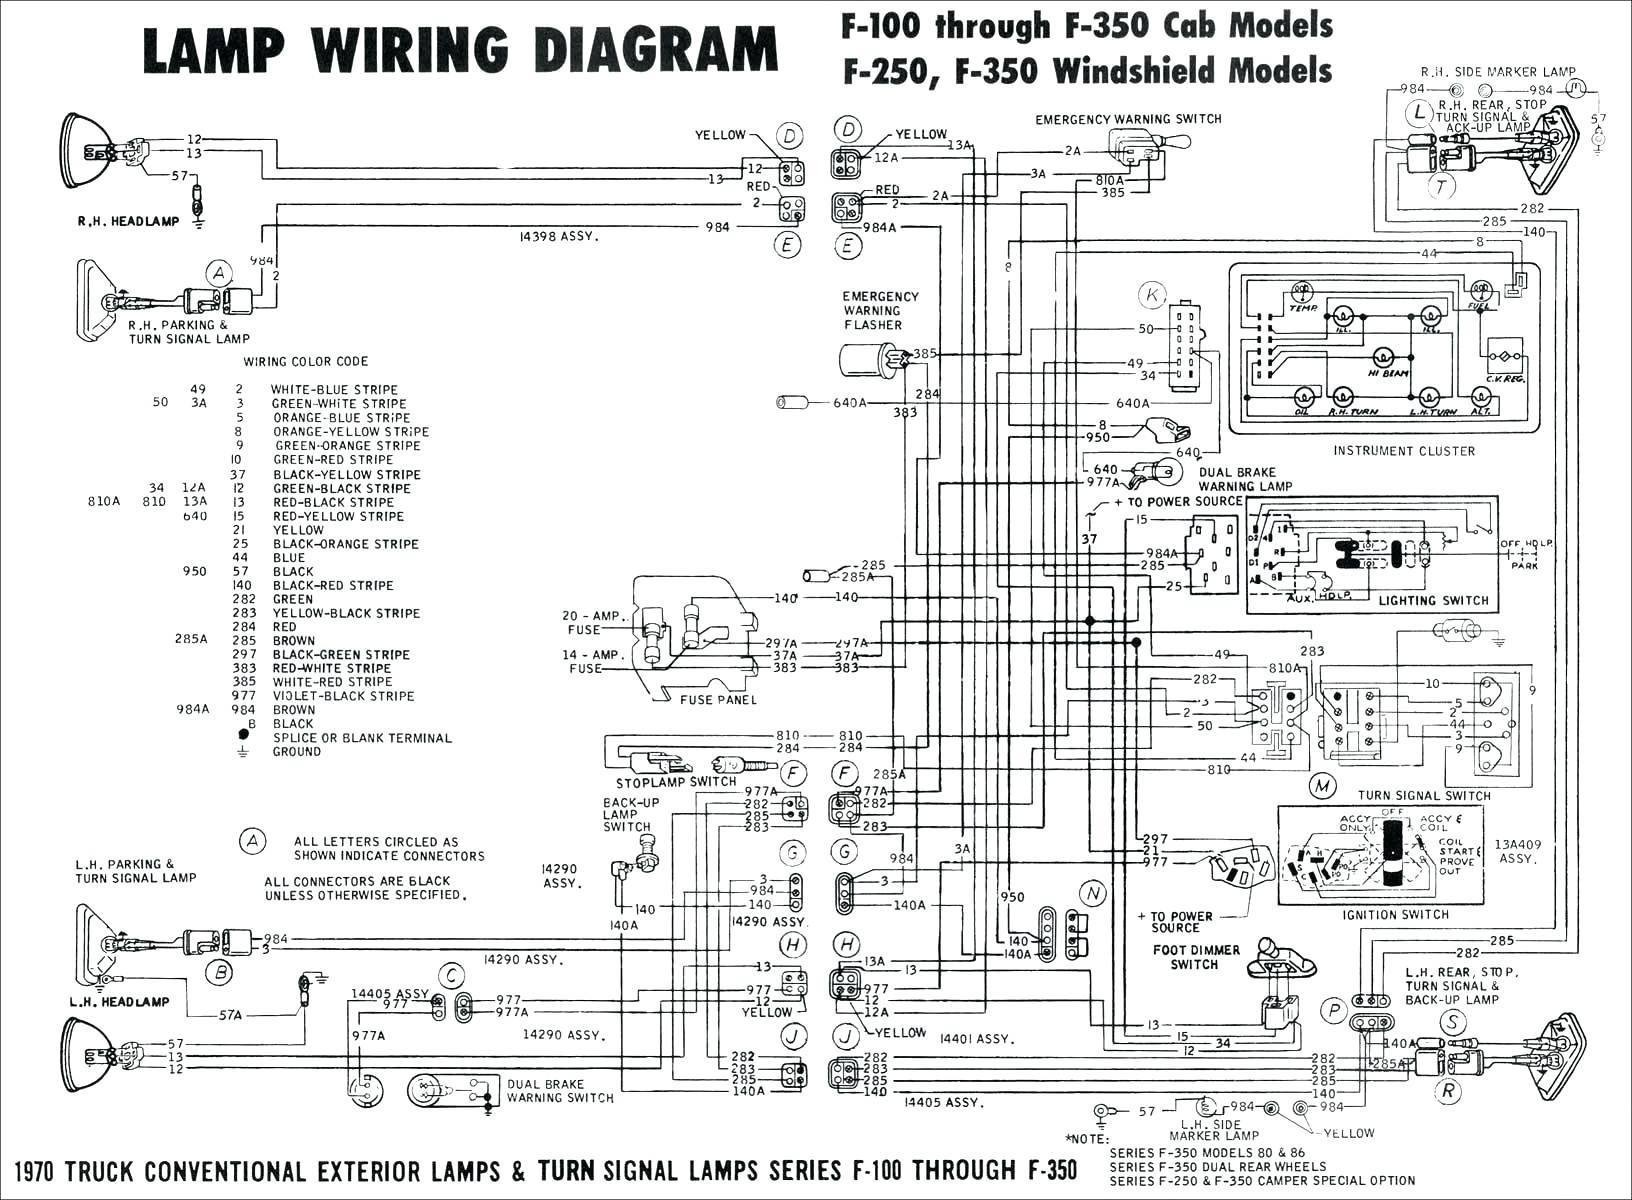 1989 Chevy Silverado Starter Wiring | Wiring Diagram on 88 chevy steering column diagram, 88 chevy radio, 88 chevy transmission, 88 chevy alternator wiring, 88 chevy ignition system, 88 chevy ignition diagram, 88 chevy relay diagram, 88 chevy ignition coil, 88 chevy distributor, 88 chevy lights, chevy 3 wire alternator diagram, 88 chevy cover, 88 chevy wheels, 88 chevy fuse diagram, 88 chevy engine wiring, 88 chevy firing order, 88 chevy s10 fuel pump, 88 chevy coil diagram, 88 chevy headlight, 88 chevy seats,